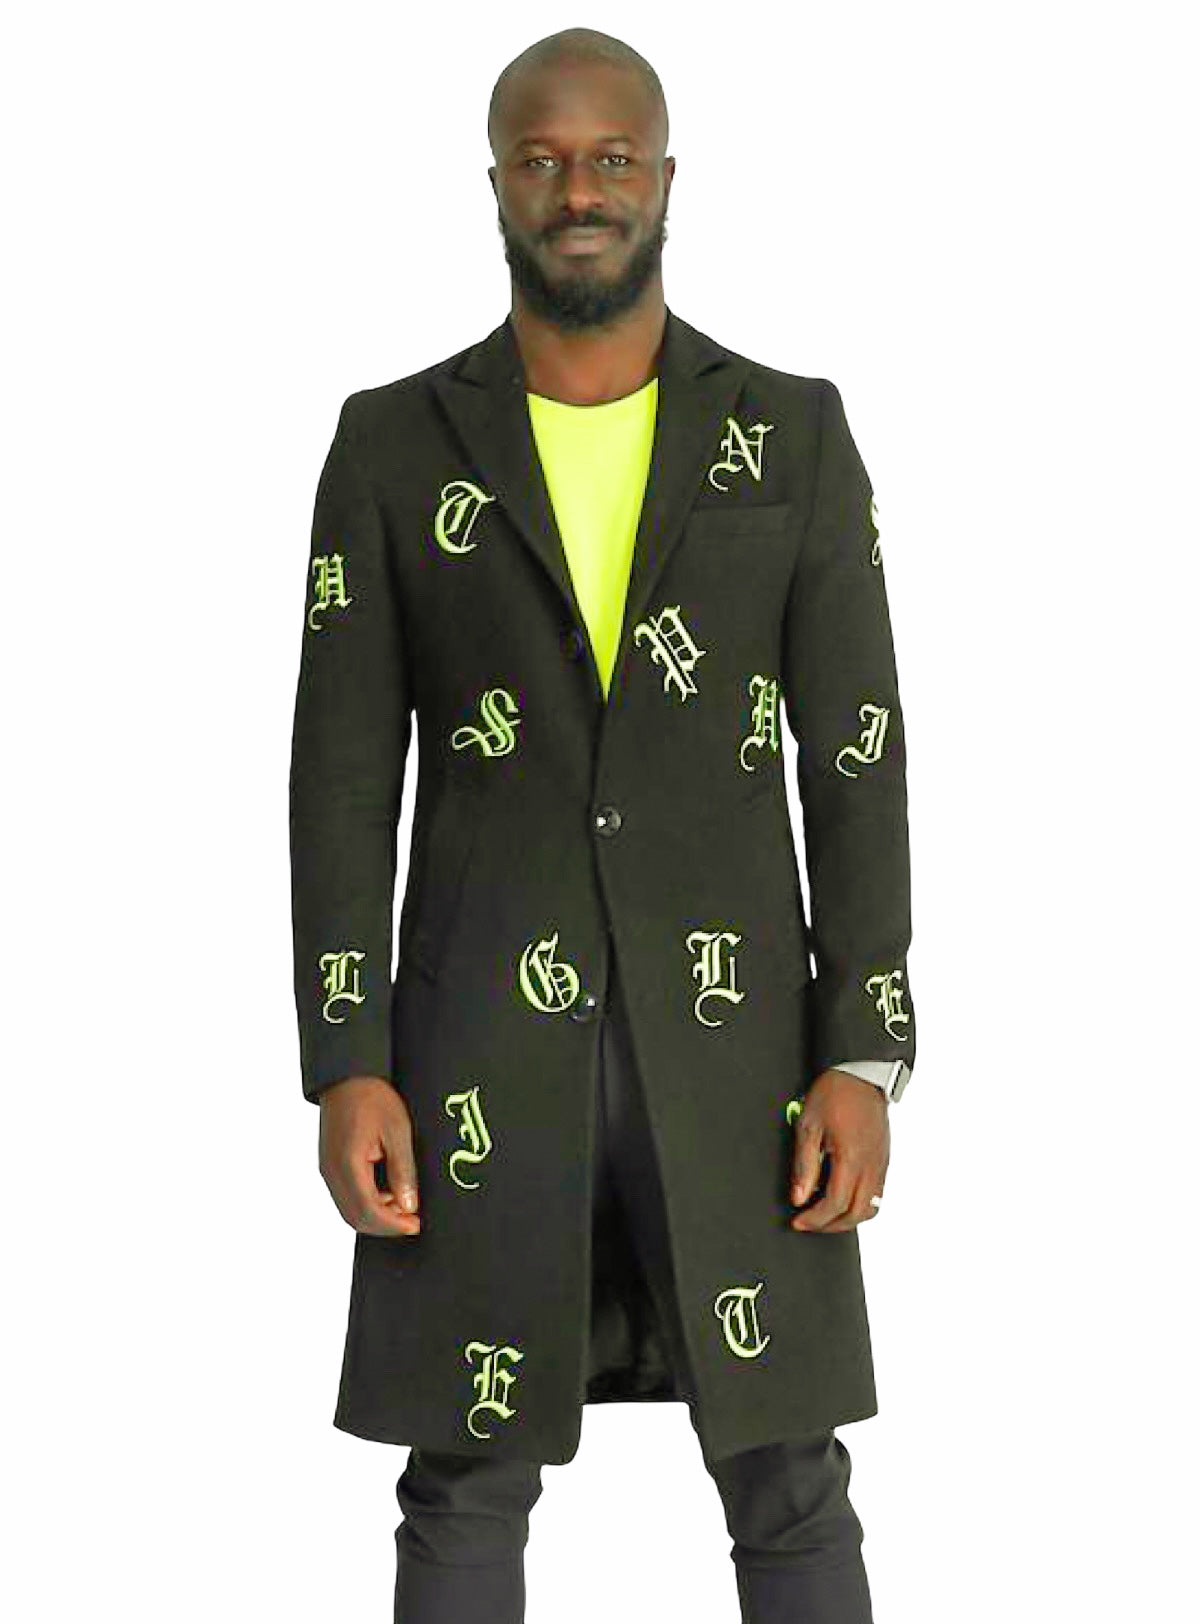 Buyer's Choice Coat - English Letters - Lime/Olive